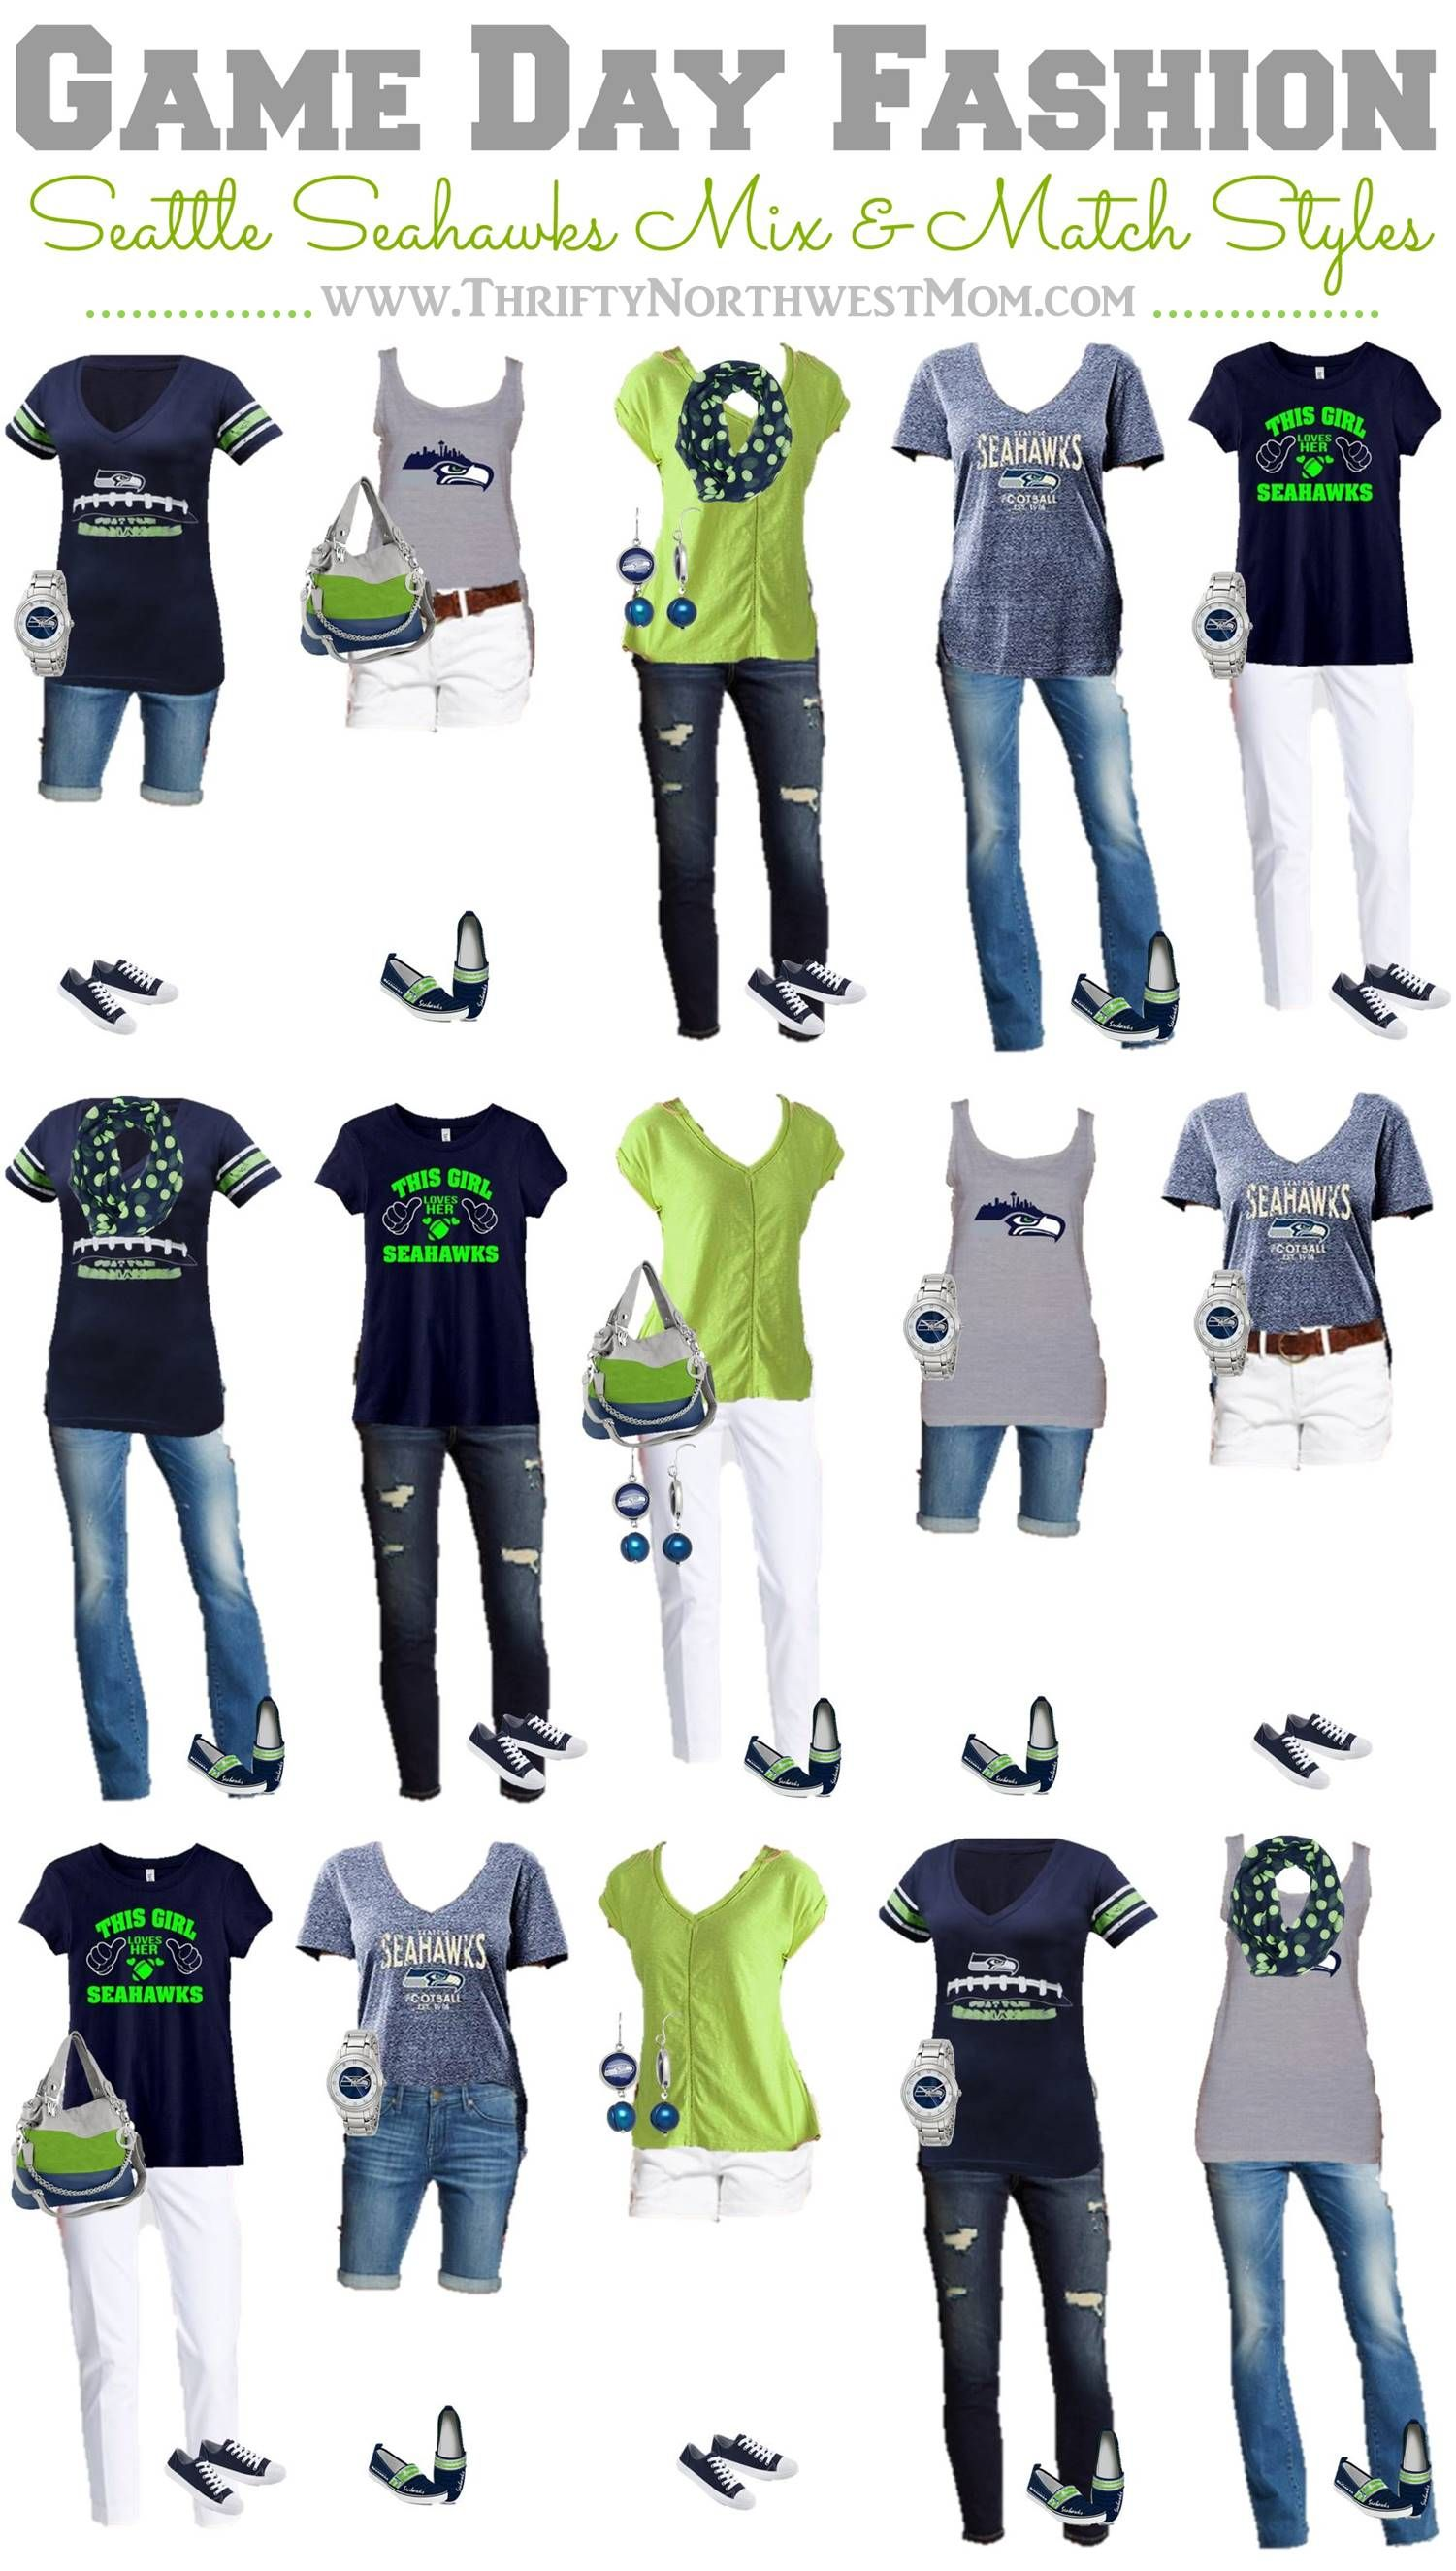 c7e95807 Seattle Seahawks Clothing for Women - 15 Mix & Match Outfits | My ...